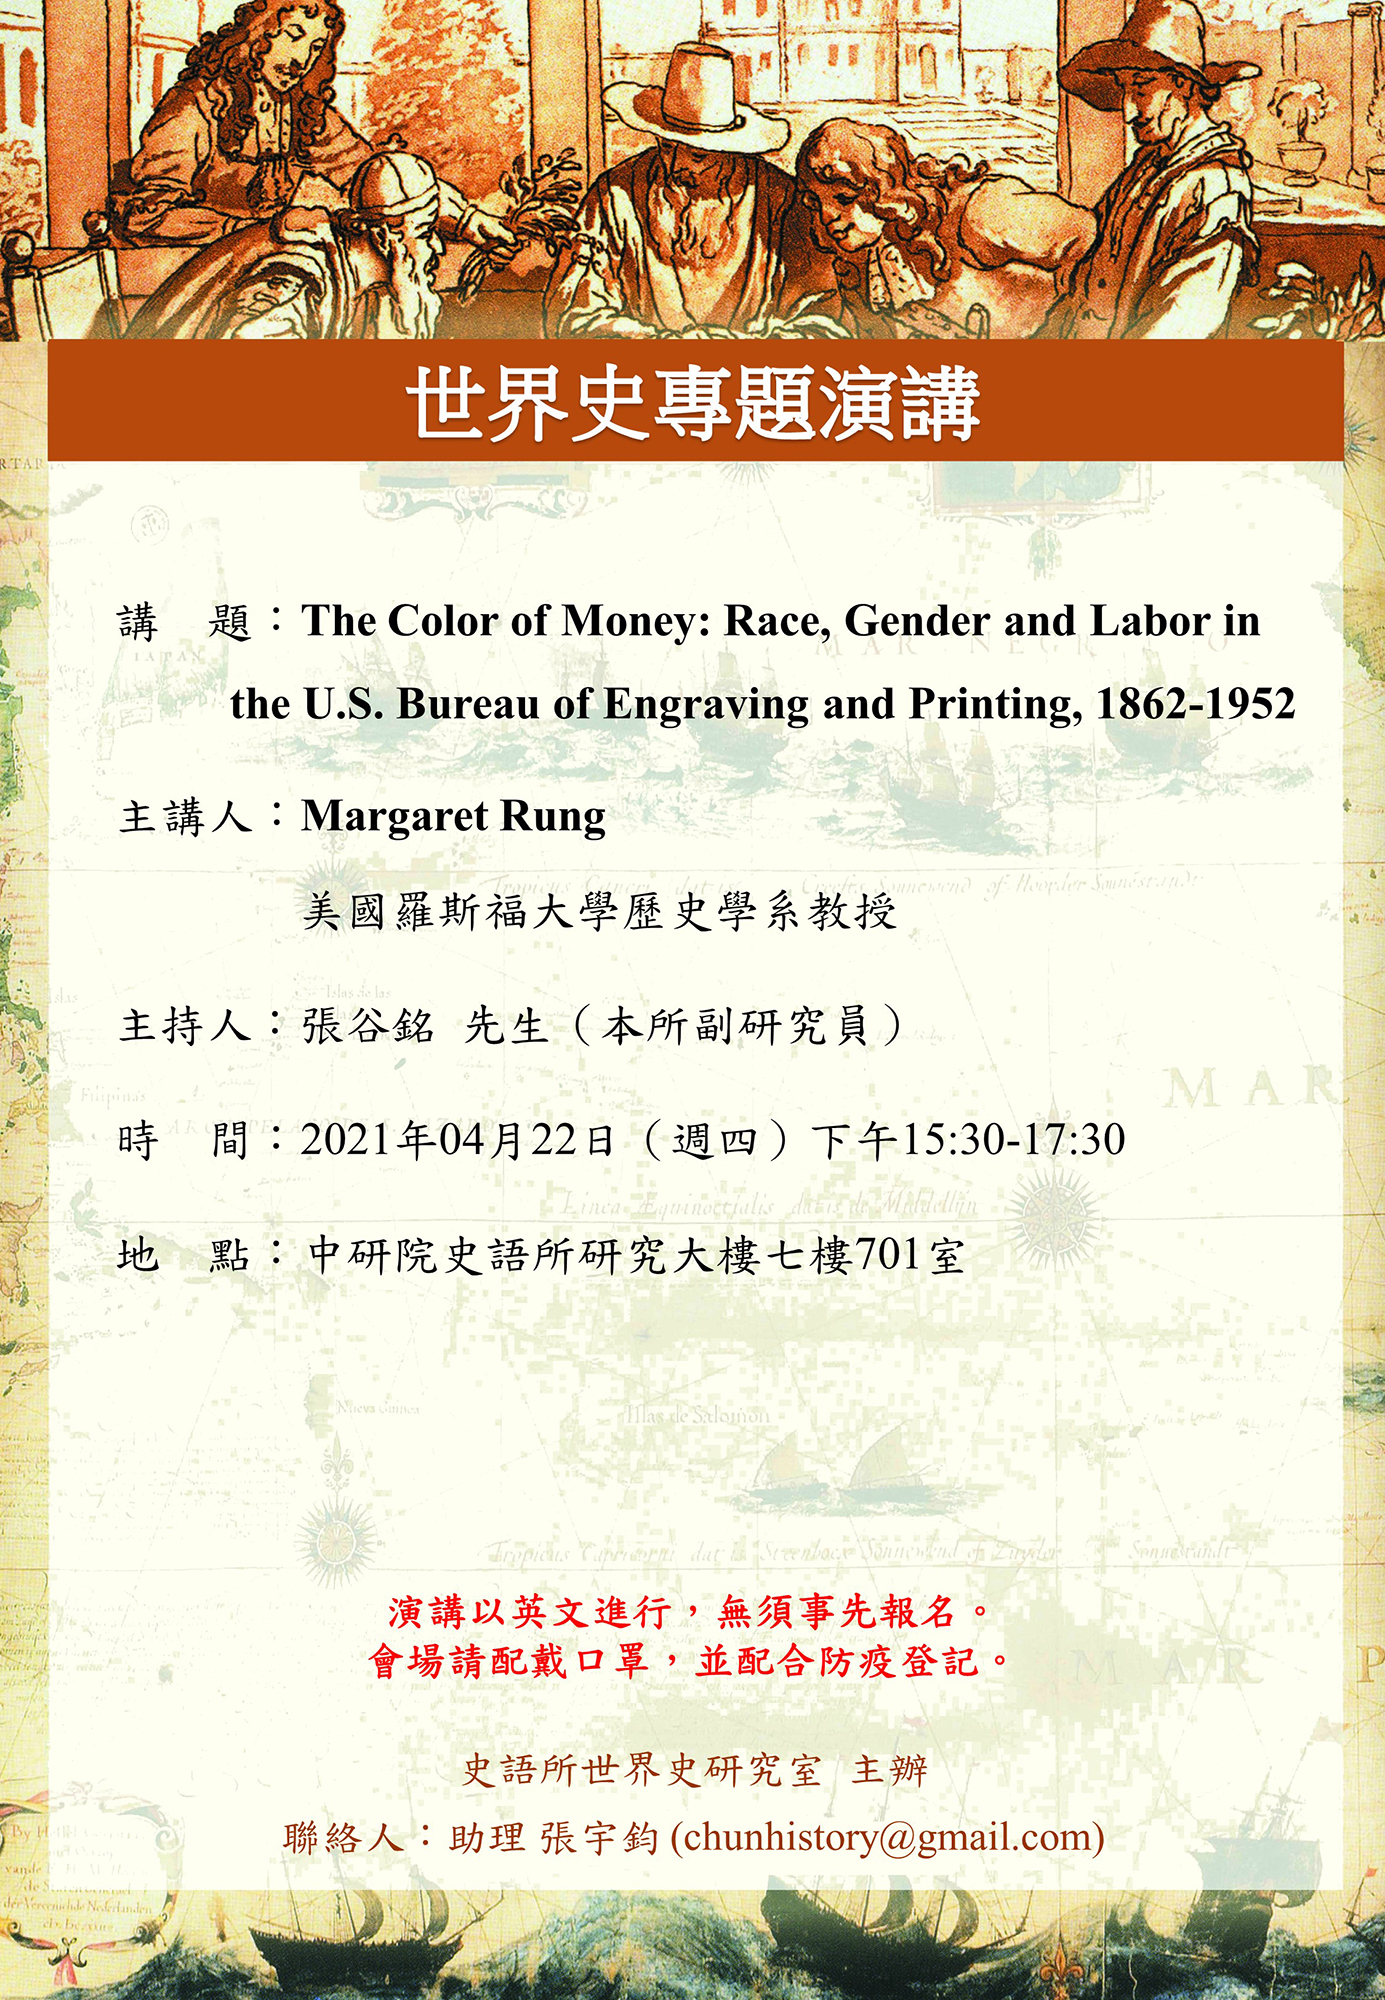 The Color of Money: Race, Gender and Labor in the U.S. Bureau of Engraving and Printing, 1862-1952